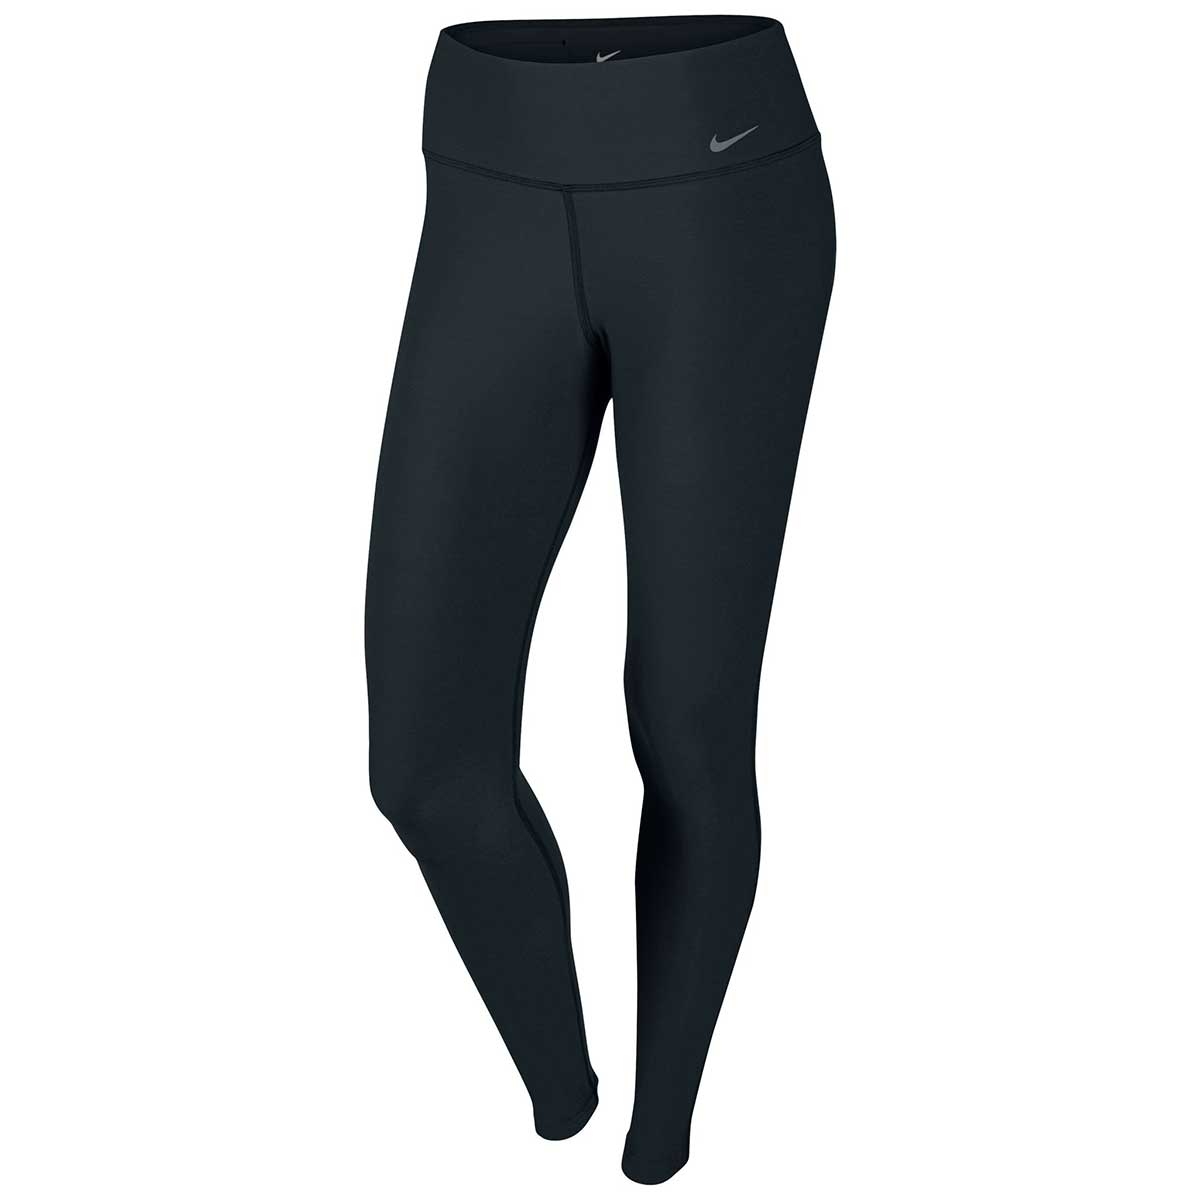 6e4786382b3 Buy Nike Legend 2.0 Women s Tights Online India